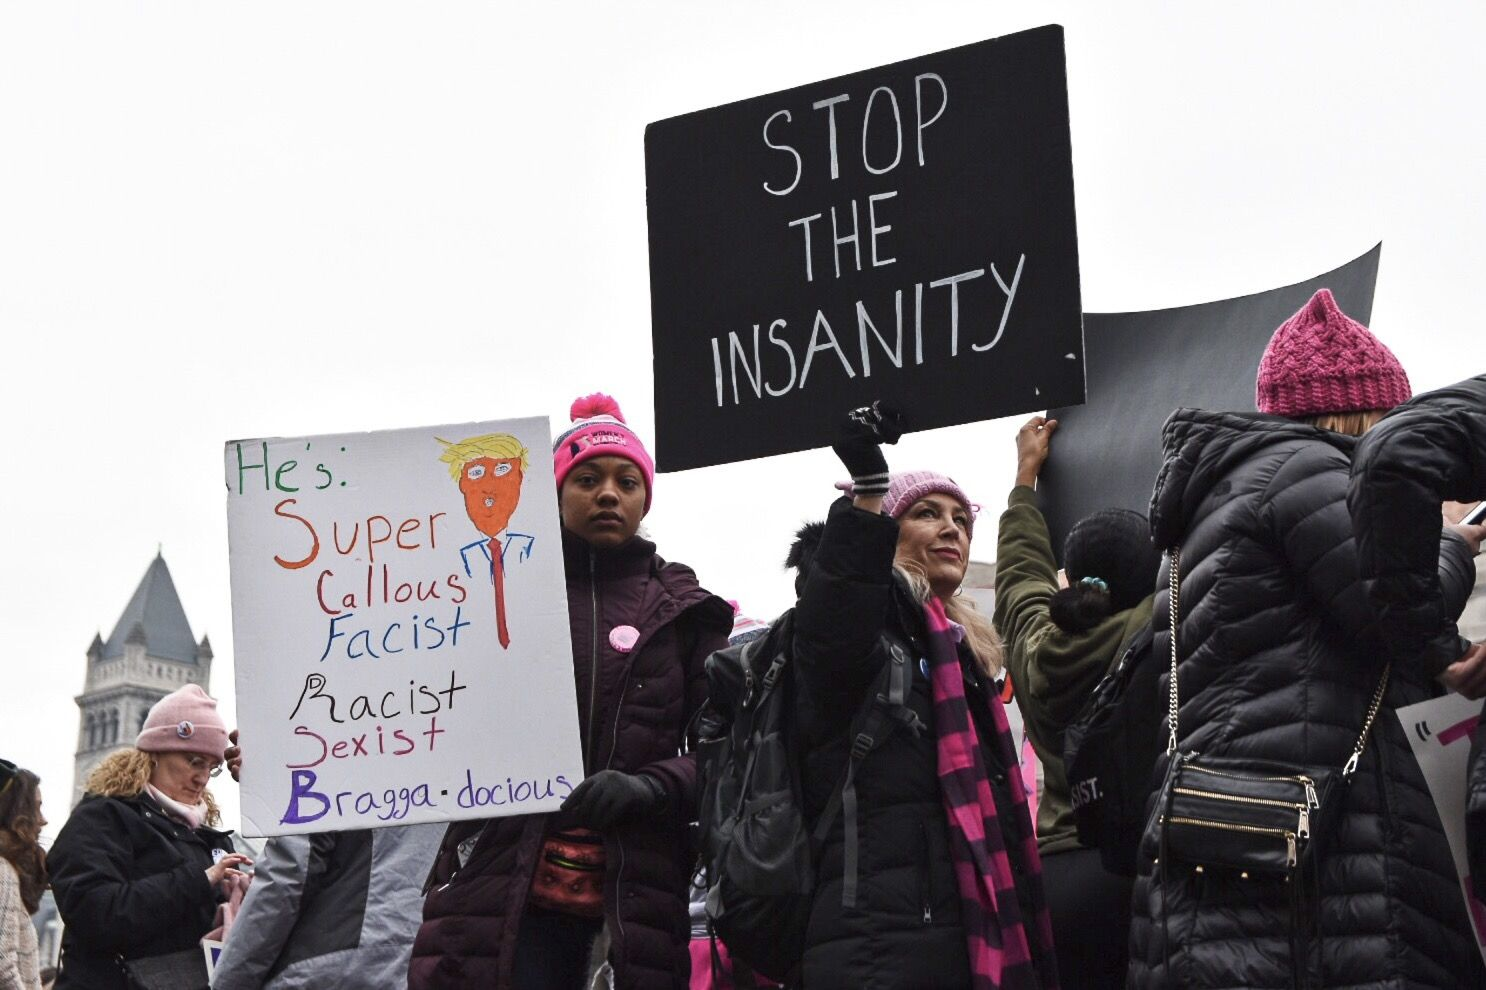 The protesters at the Women's March main stage at Freedom Plaza on the morning of Jan. 19, with the Trump International Hotel in the backdrop. (WTOP/Alejandro Alvarez)